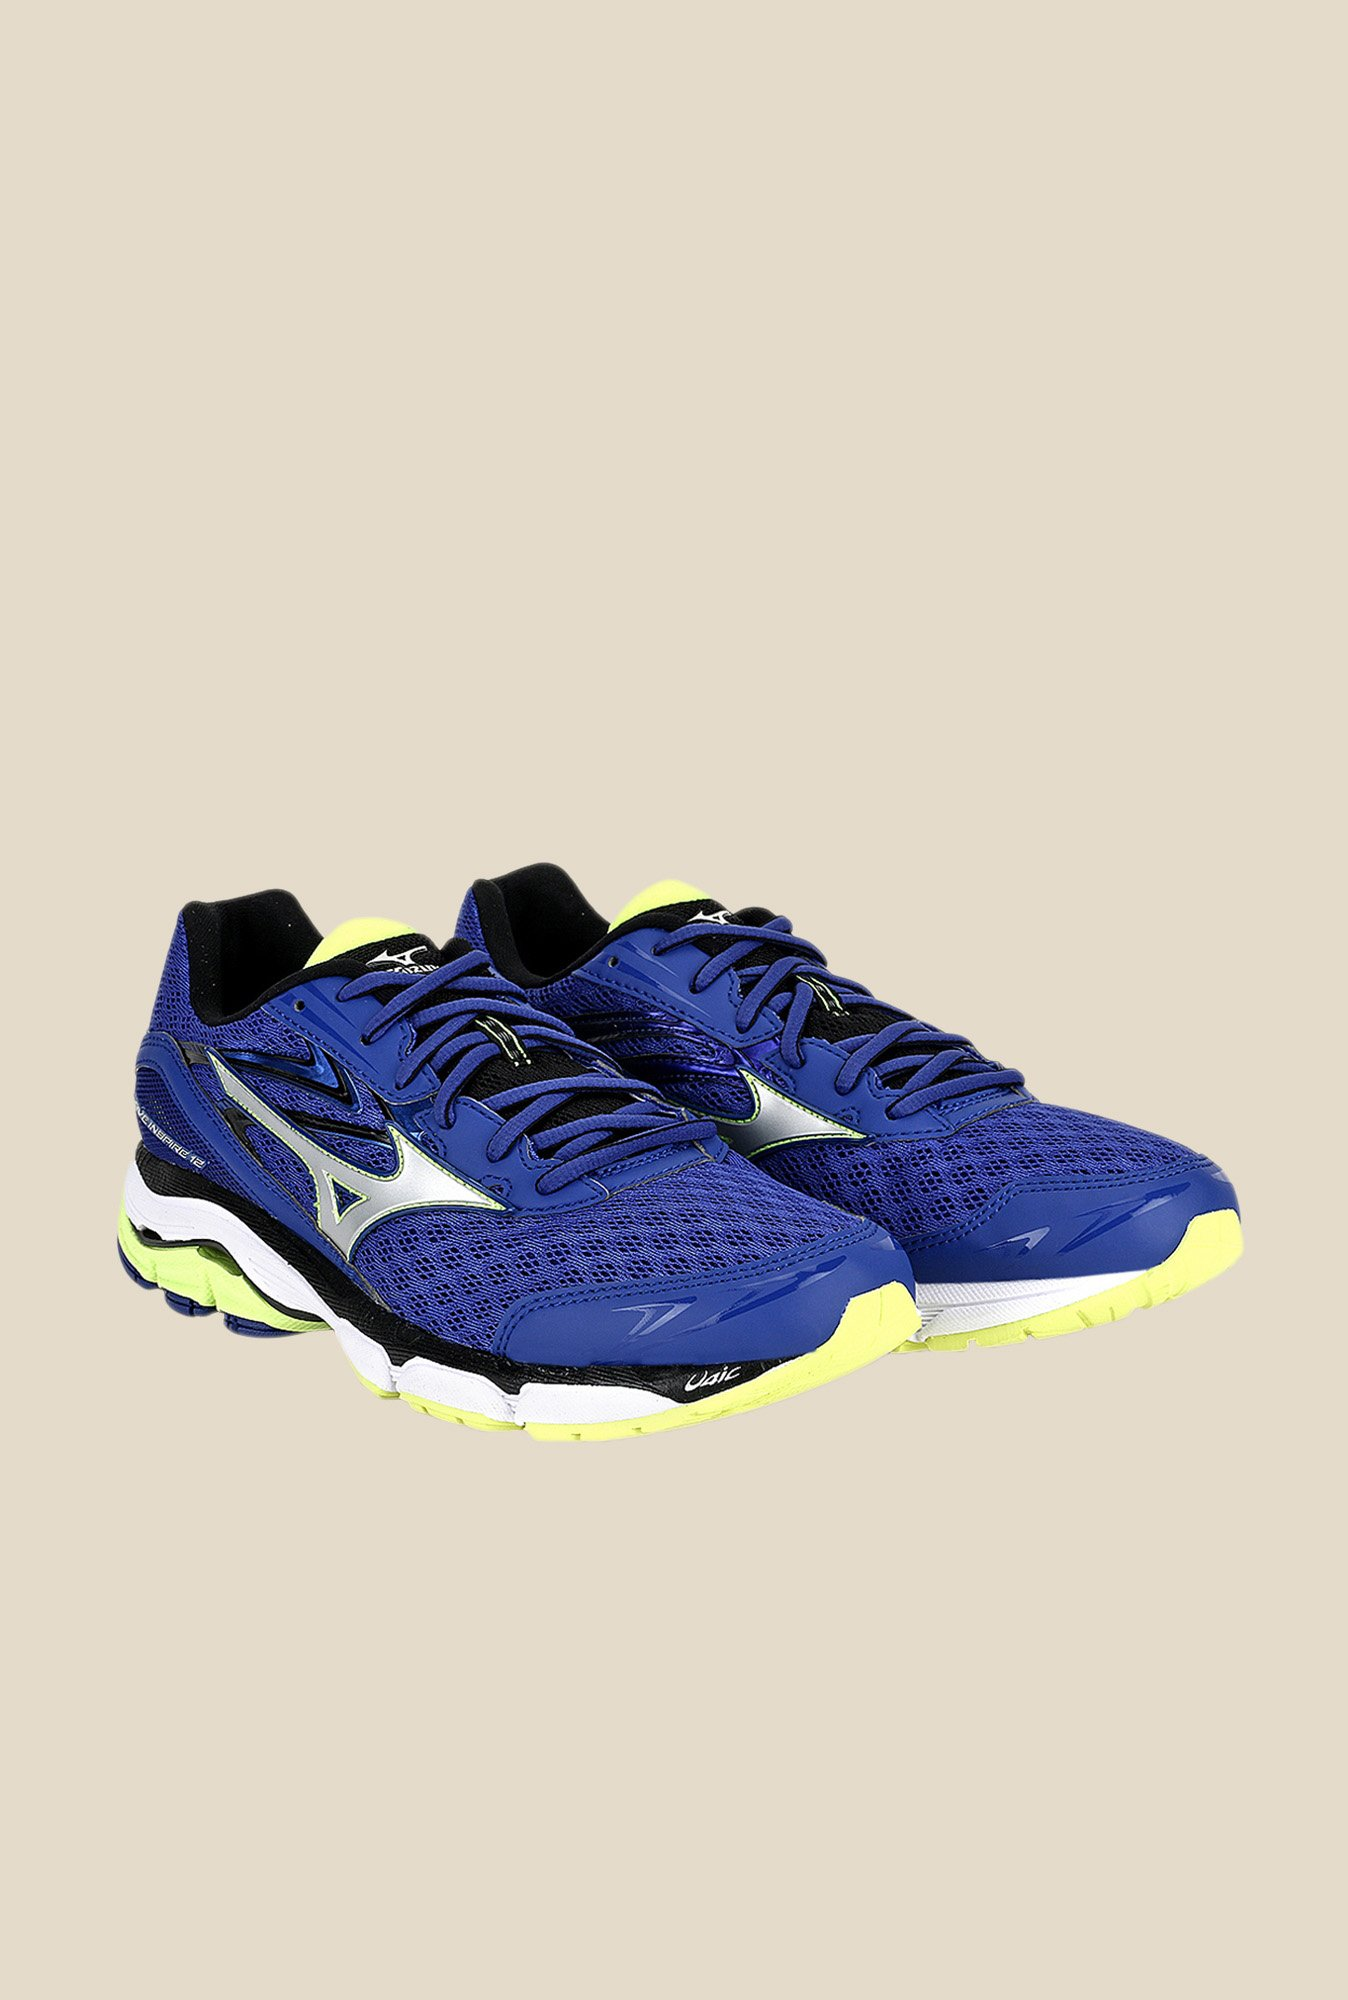 Mizuno Wave Inspire 12 Blue & Silver Running Shoes